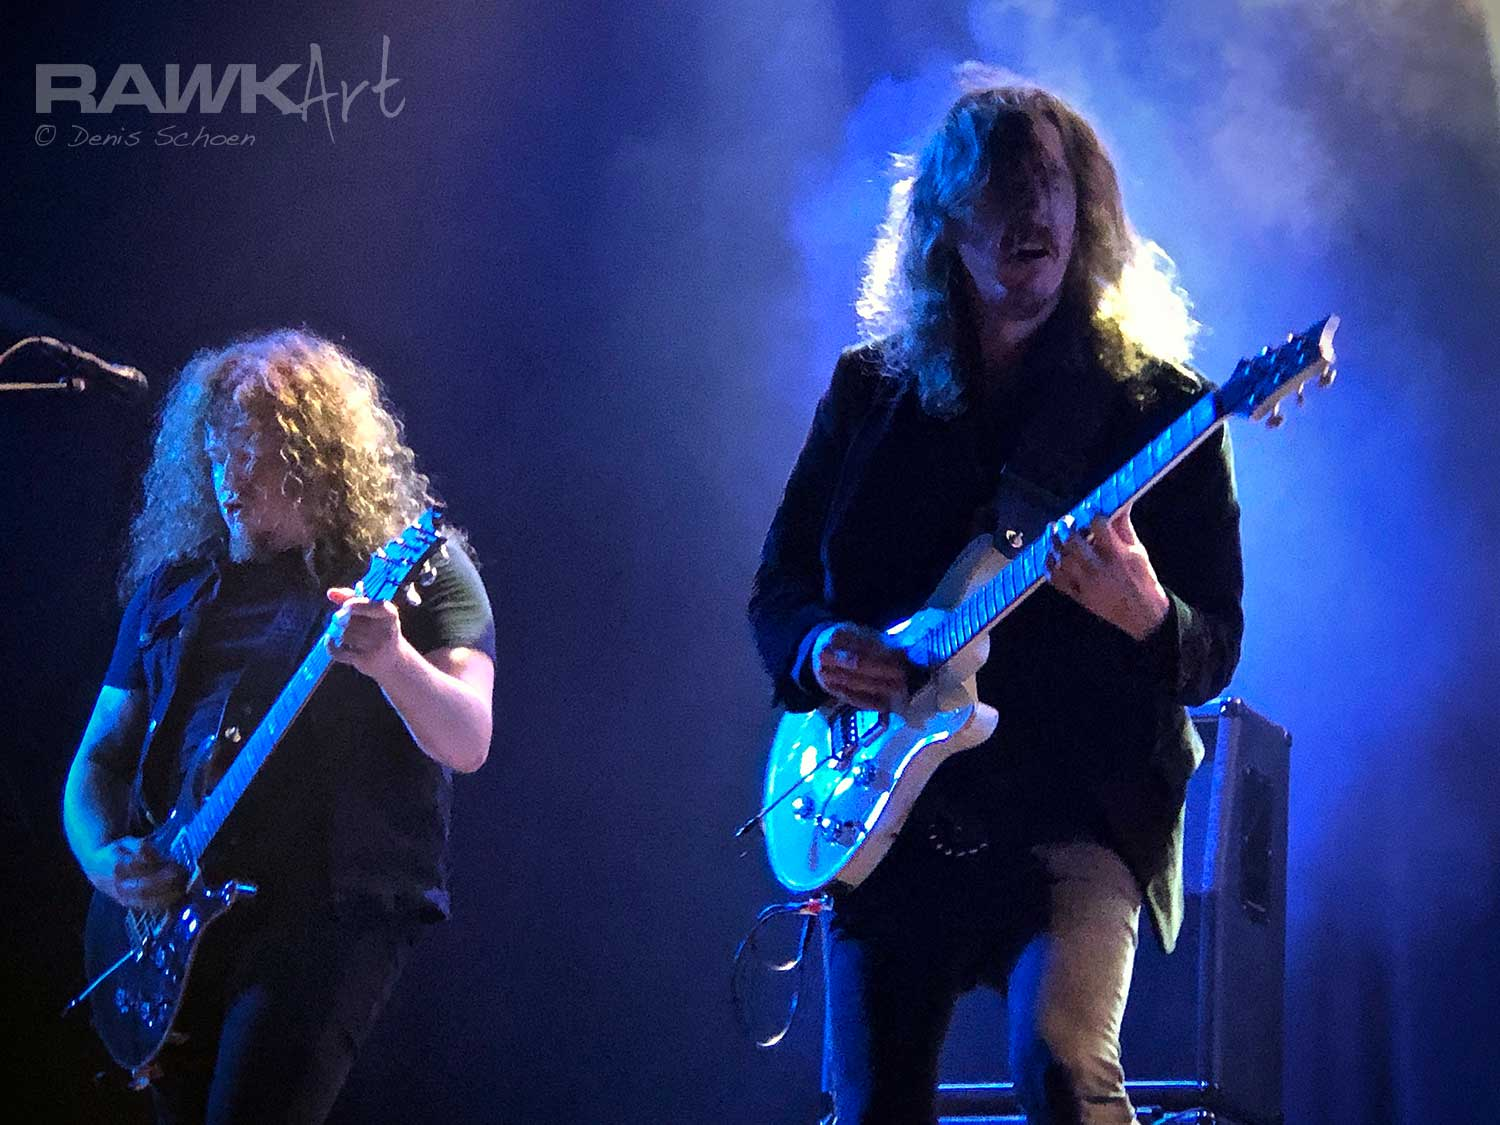 Opeth at Into The Grave 2019